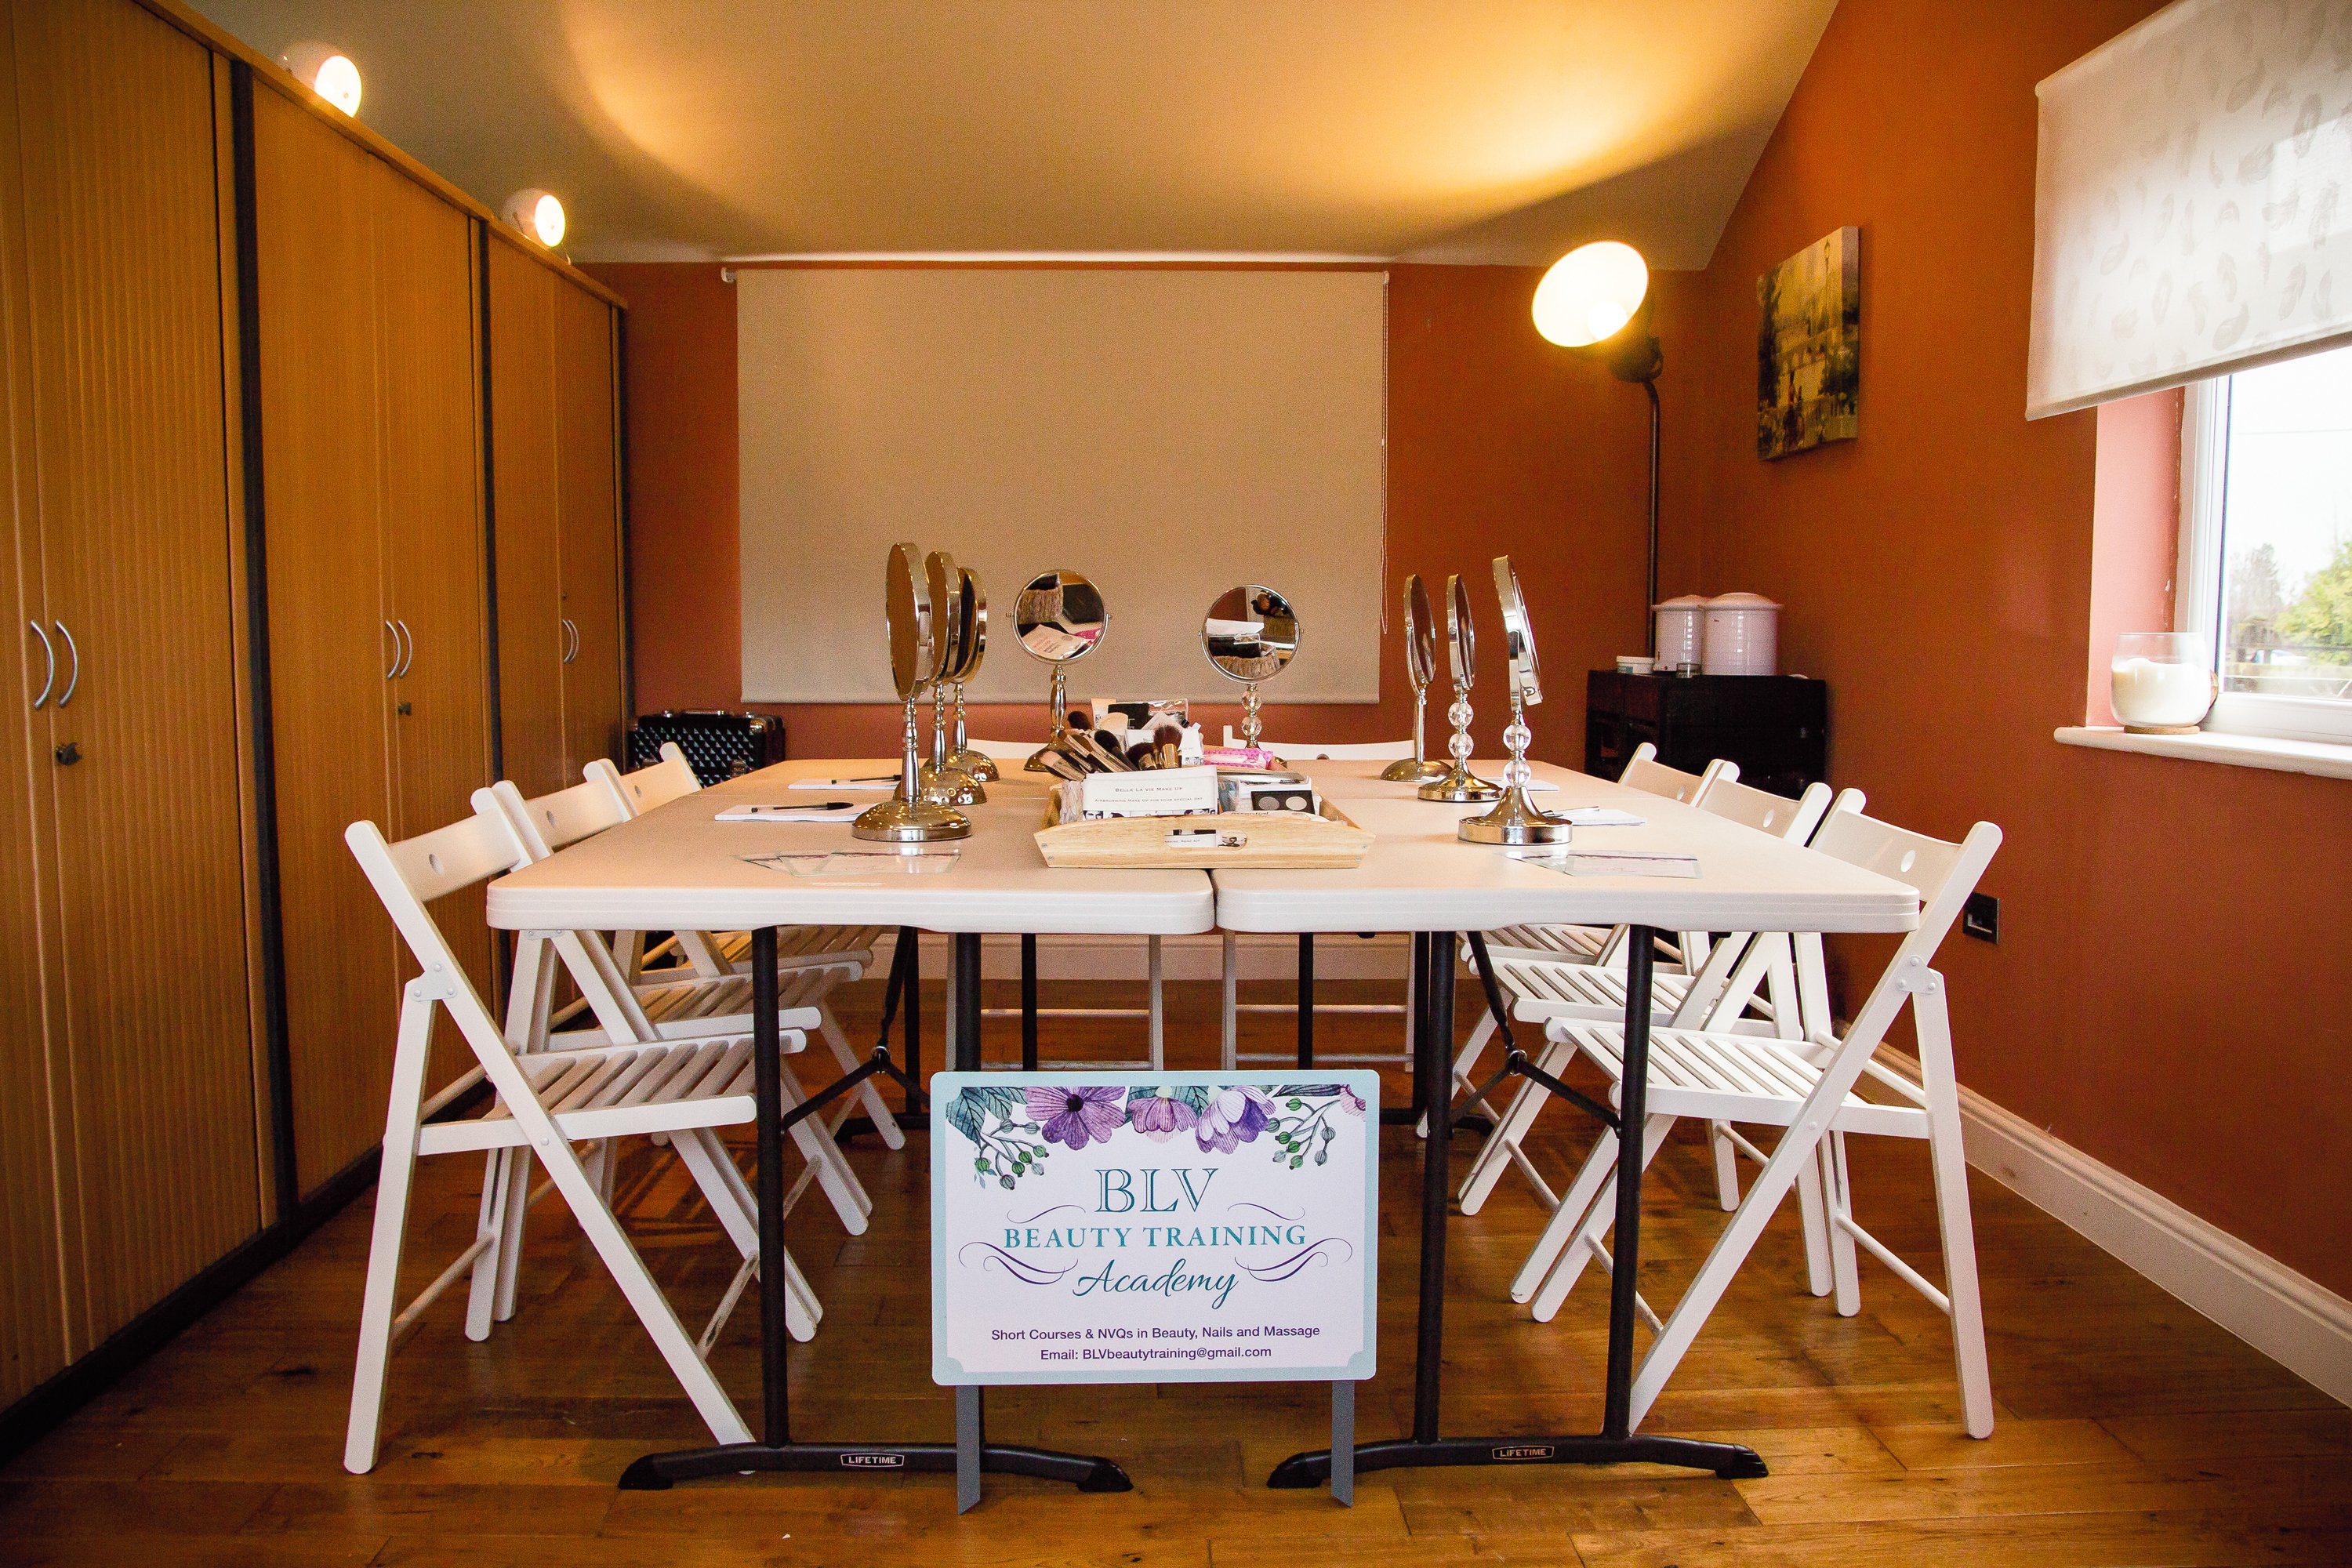 Image Of A Training Room Used For Beauty Courses